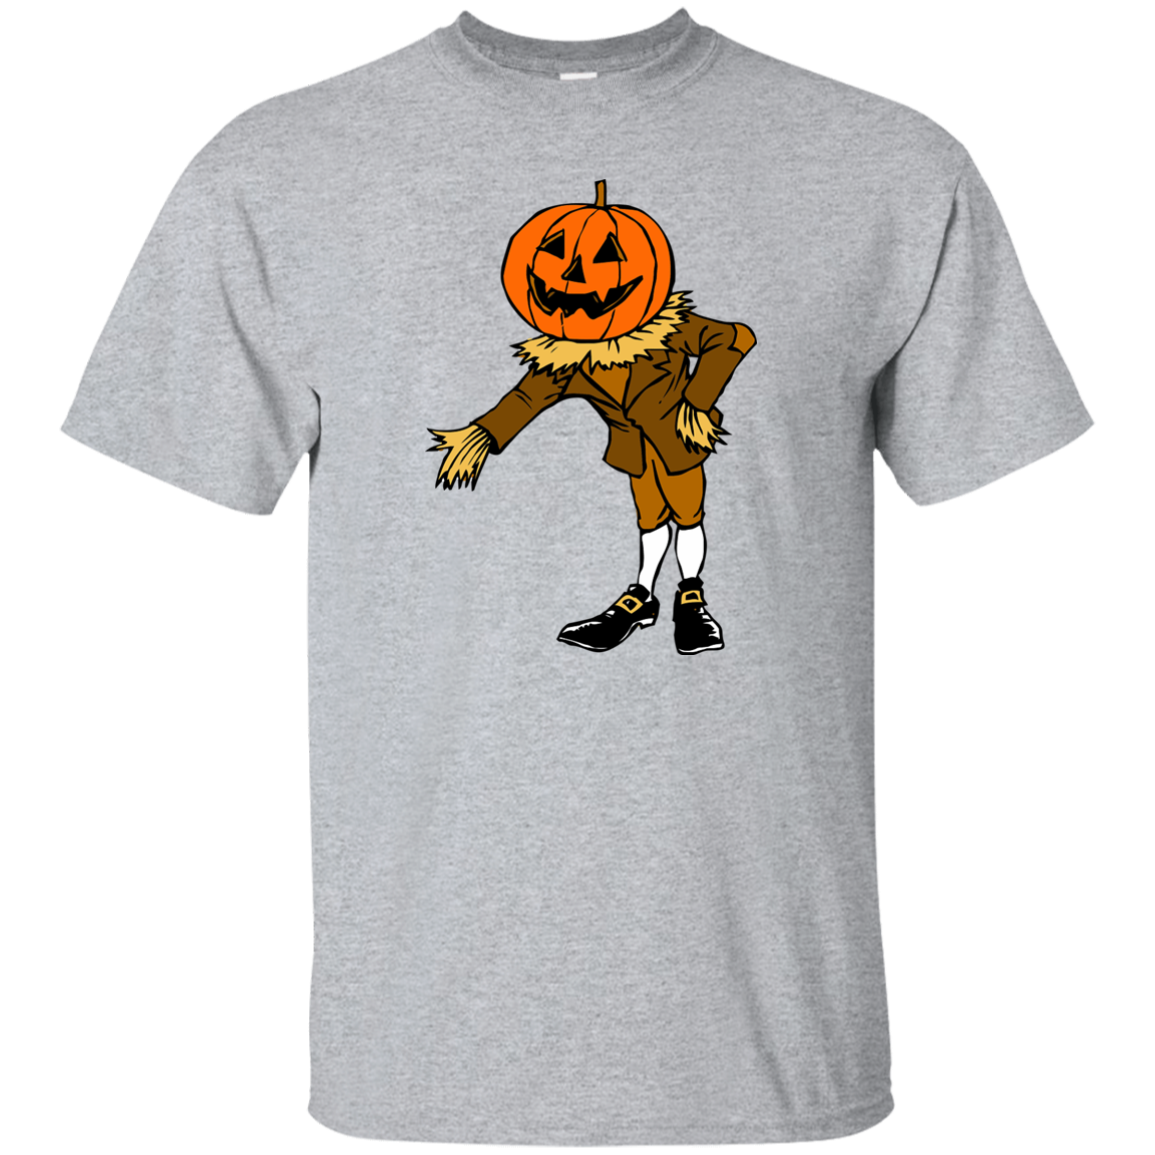 253c07e82 G200 Gildan Ultra Cotton T-Shirt / Pumpkin Man in 2018 | Halloween ...